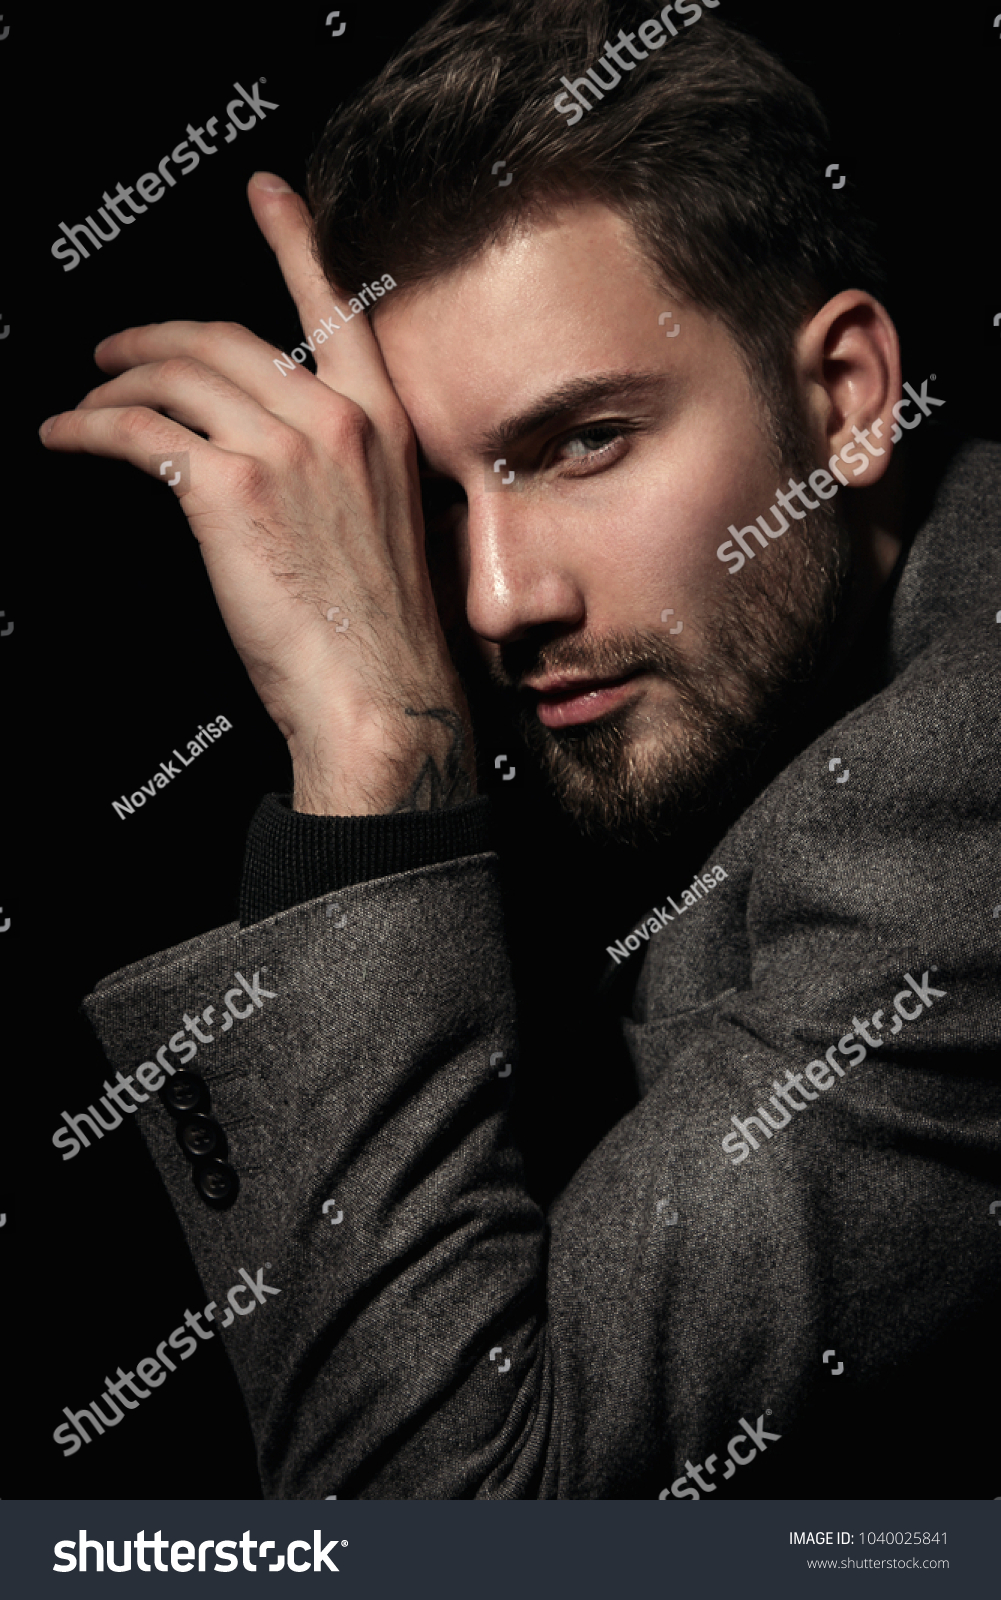 Handsome brutal man in gray suit cool hair style.Sexy Businessman. Confident, attractive, stylish. Fashion shooting. Actor. #1040025841